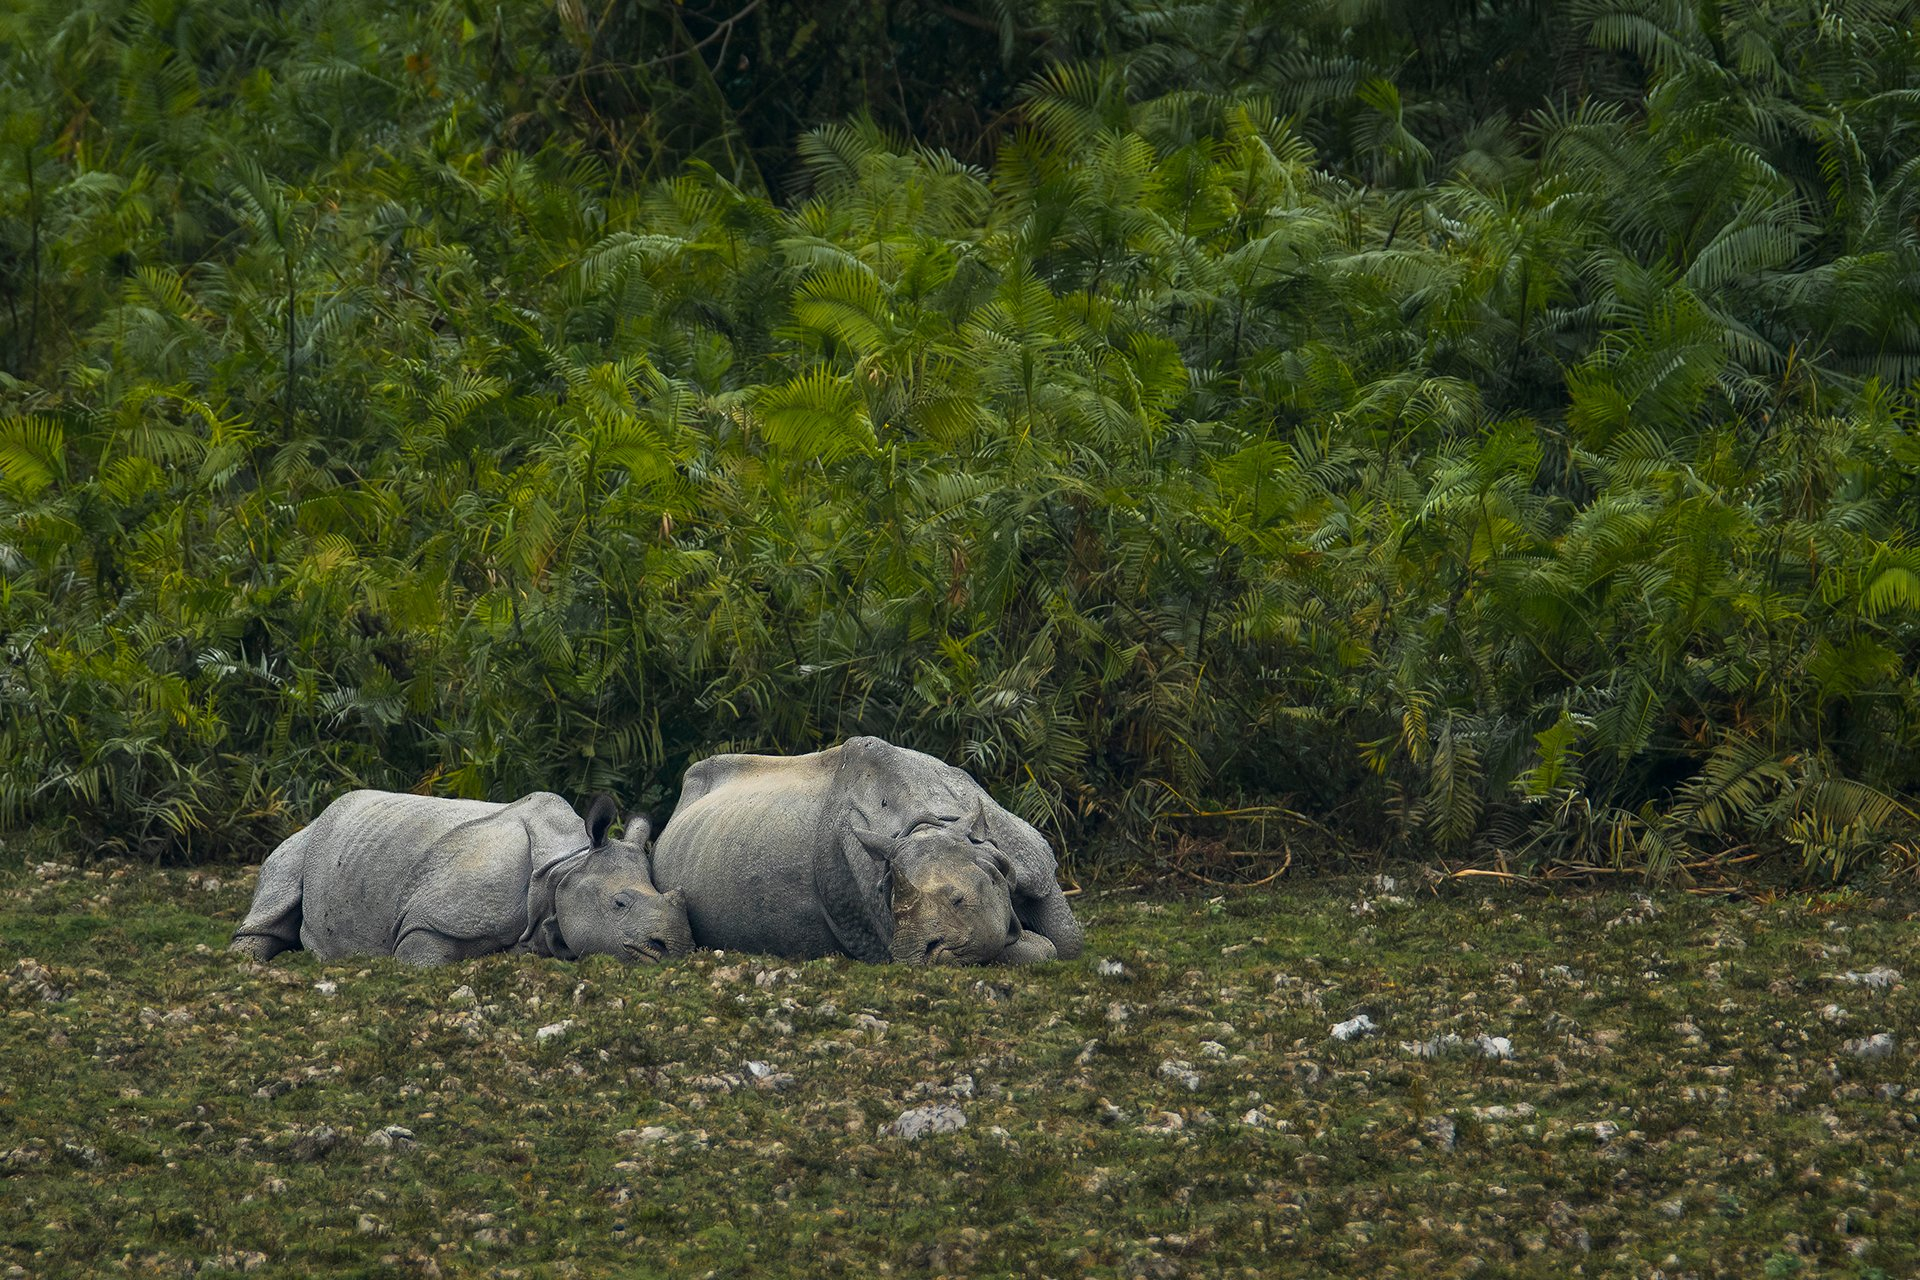 Greater One Horned Rhinoceros or Indian Rhinoceros mother is sleeping with her calf in Kaziranga National Park 2019